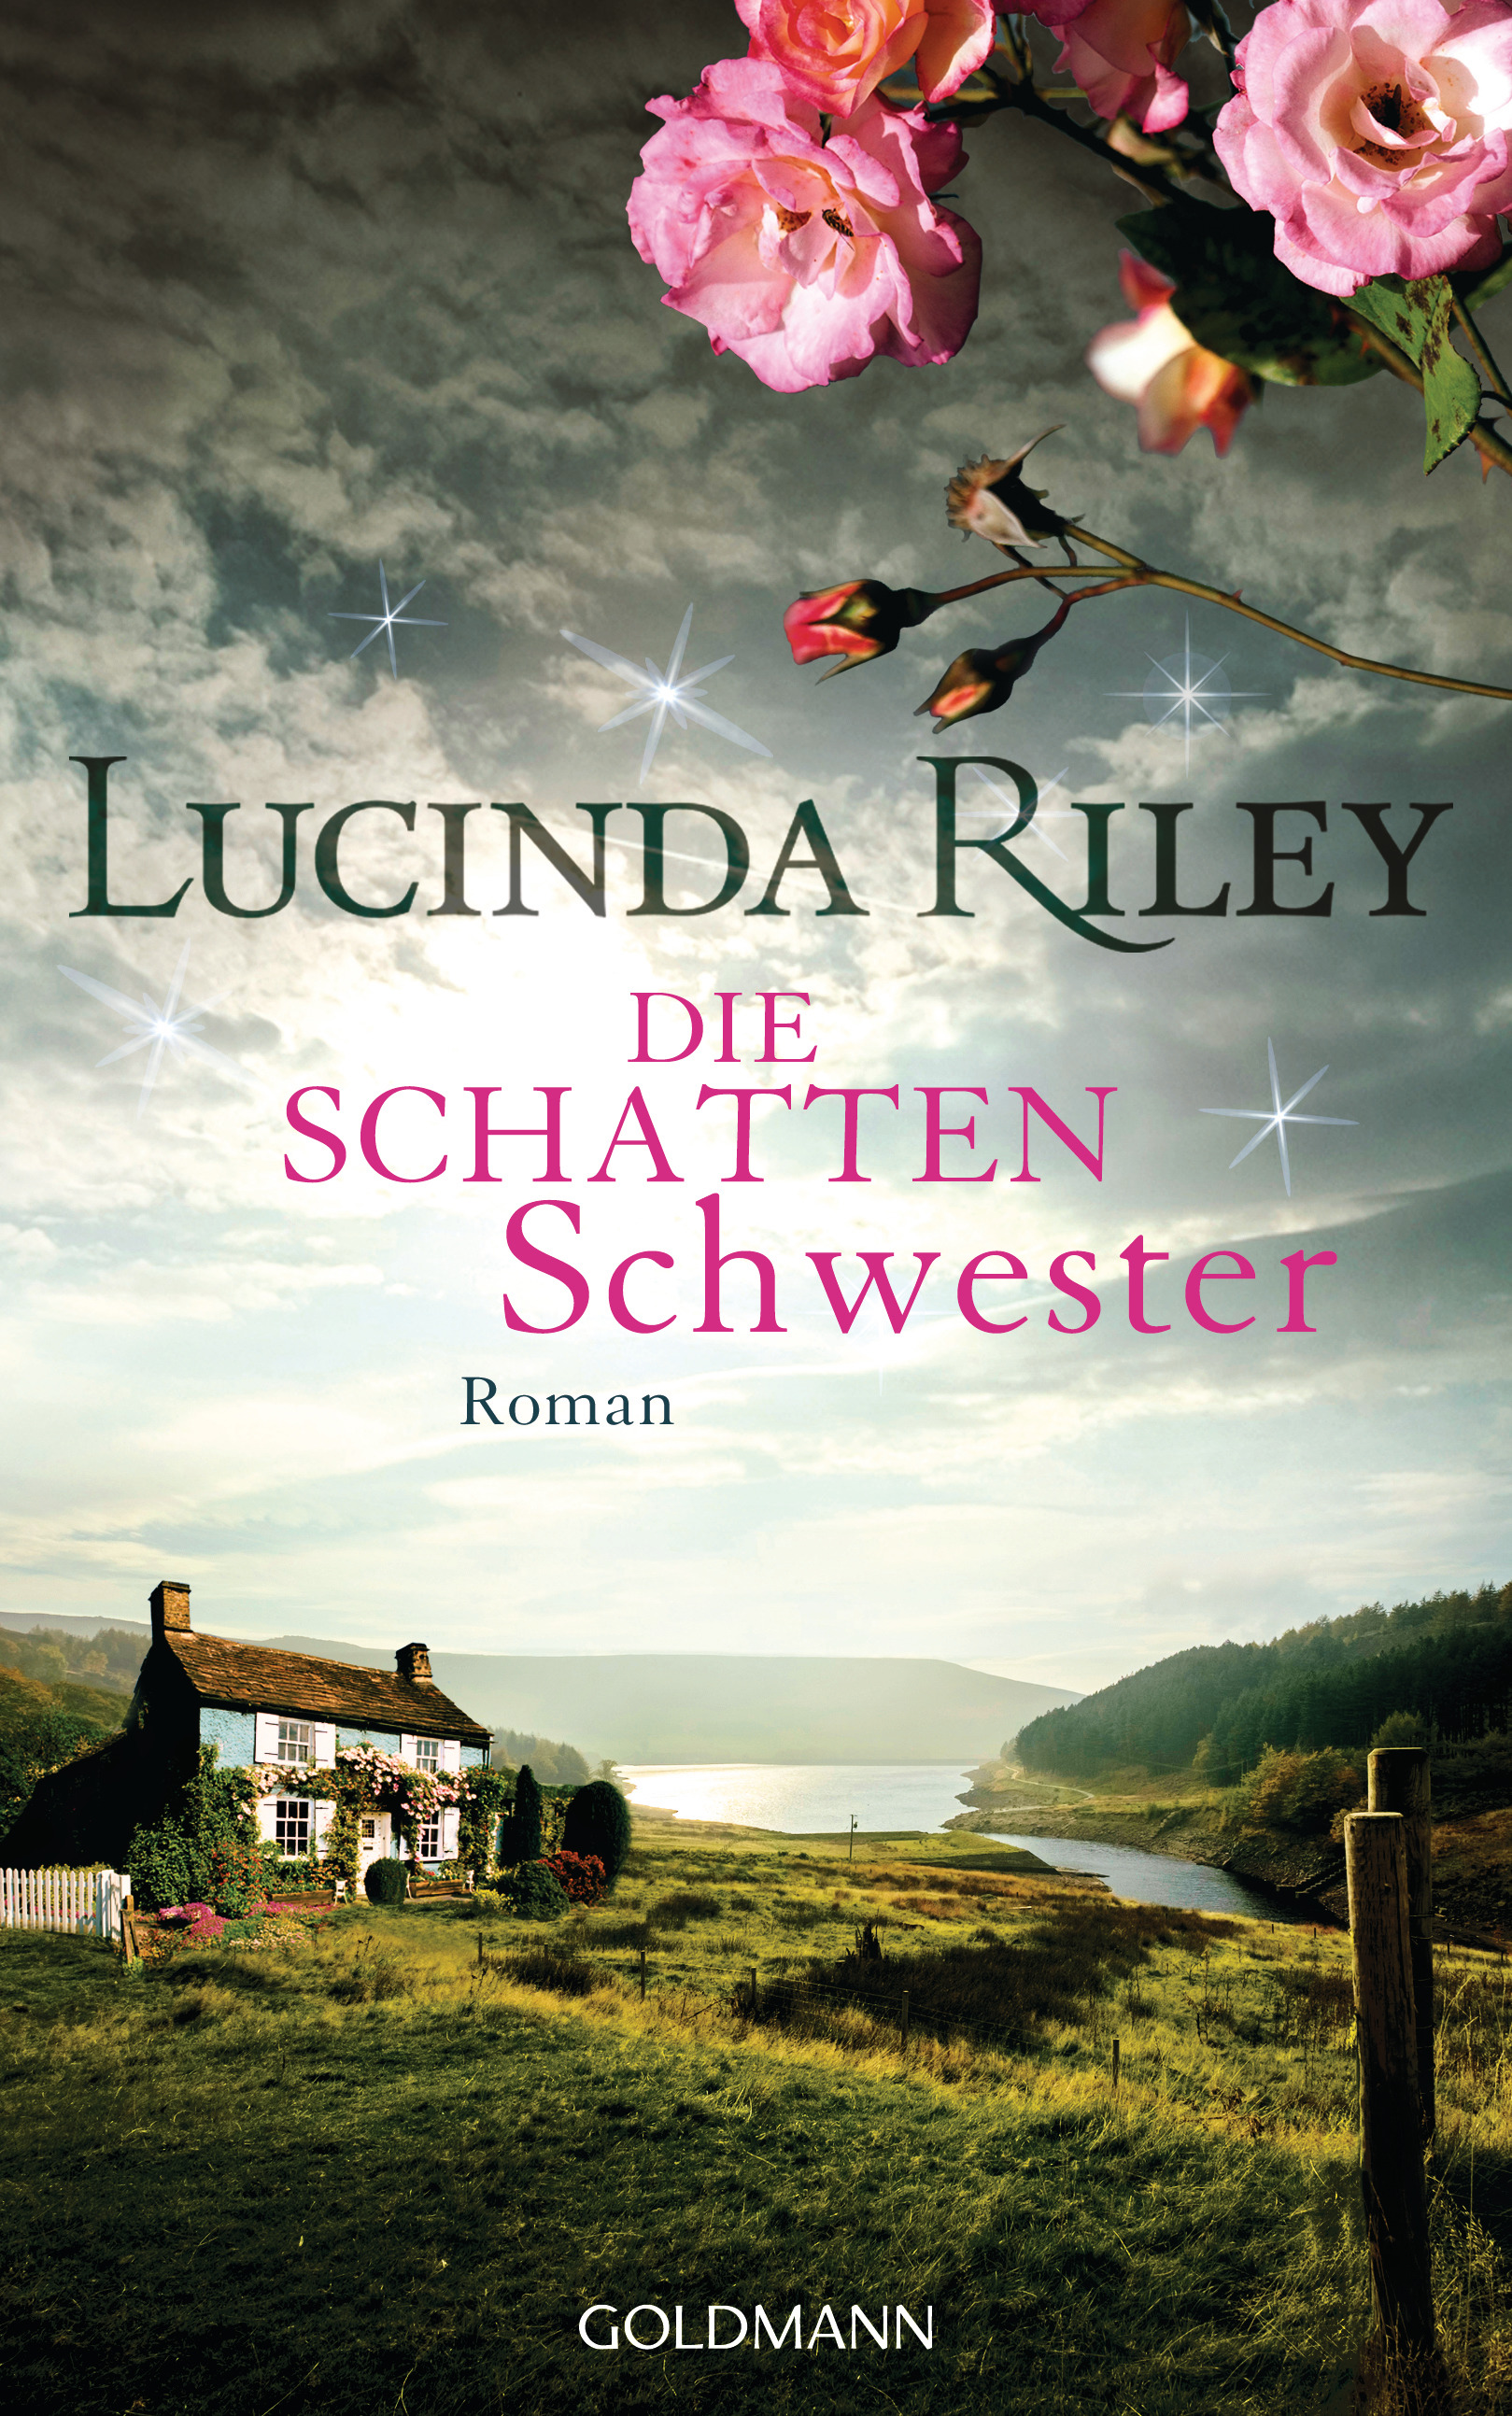 https://www.randomhouse.de/content/edition/covervoila_hires/Riley_LDie_Schattenschw_7Schwest3__172127.jpg